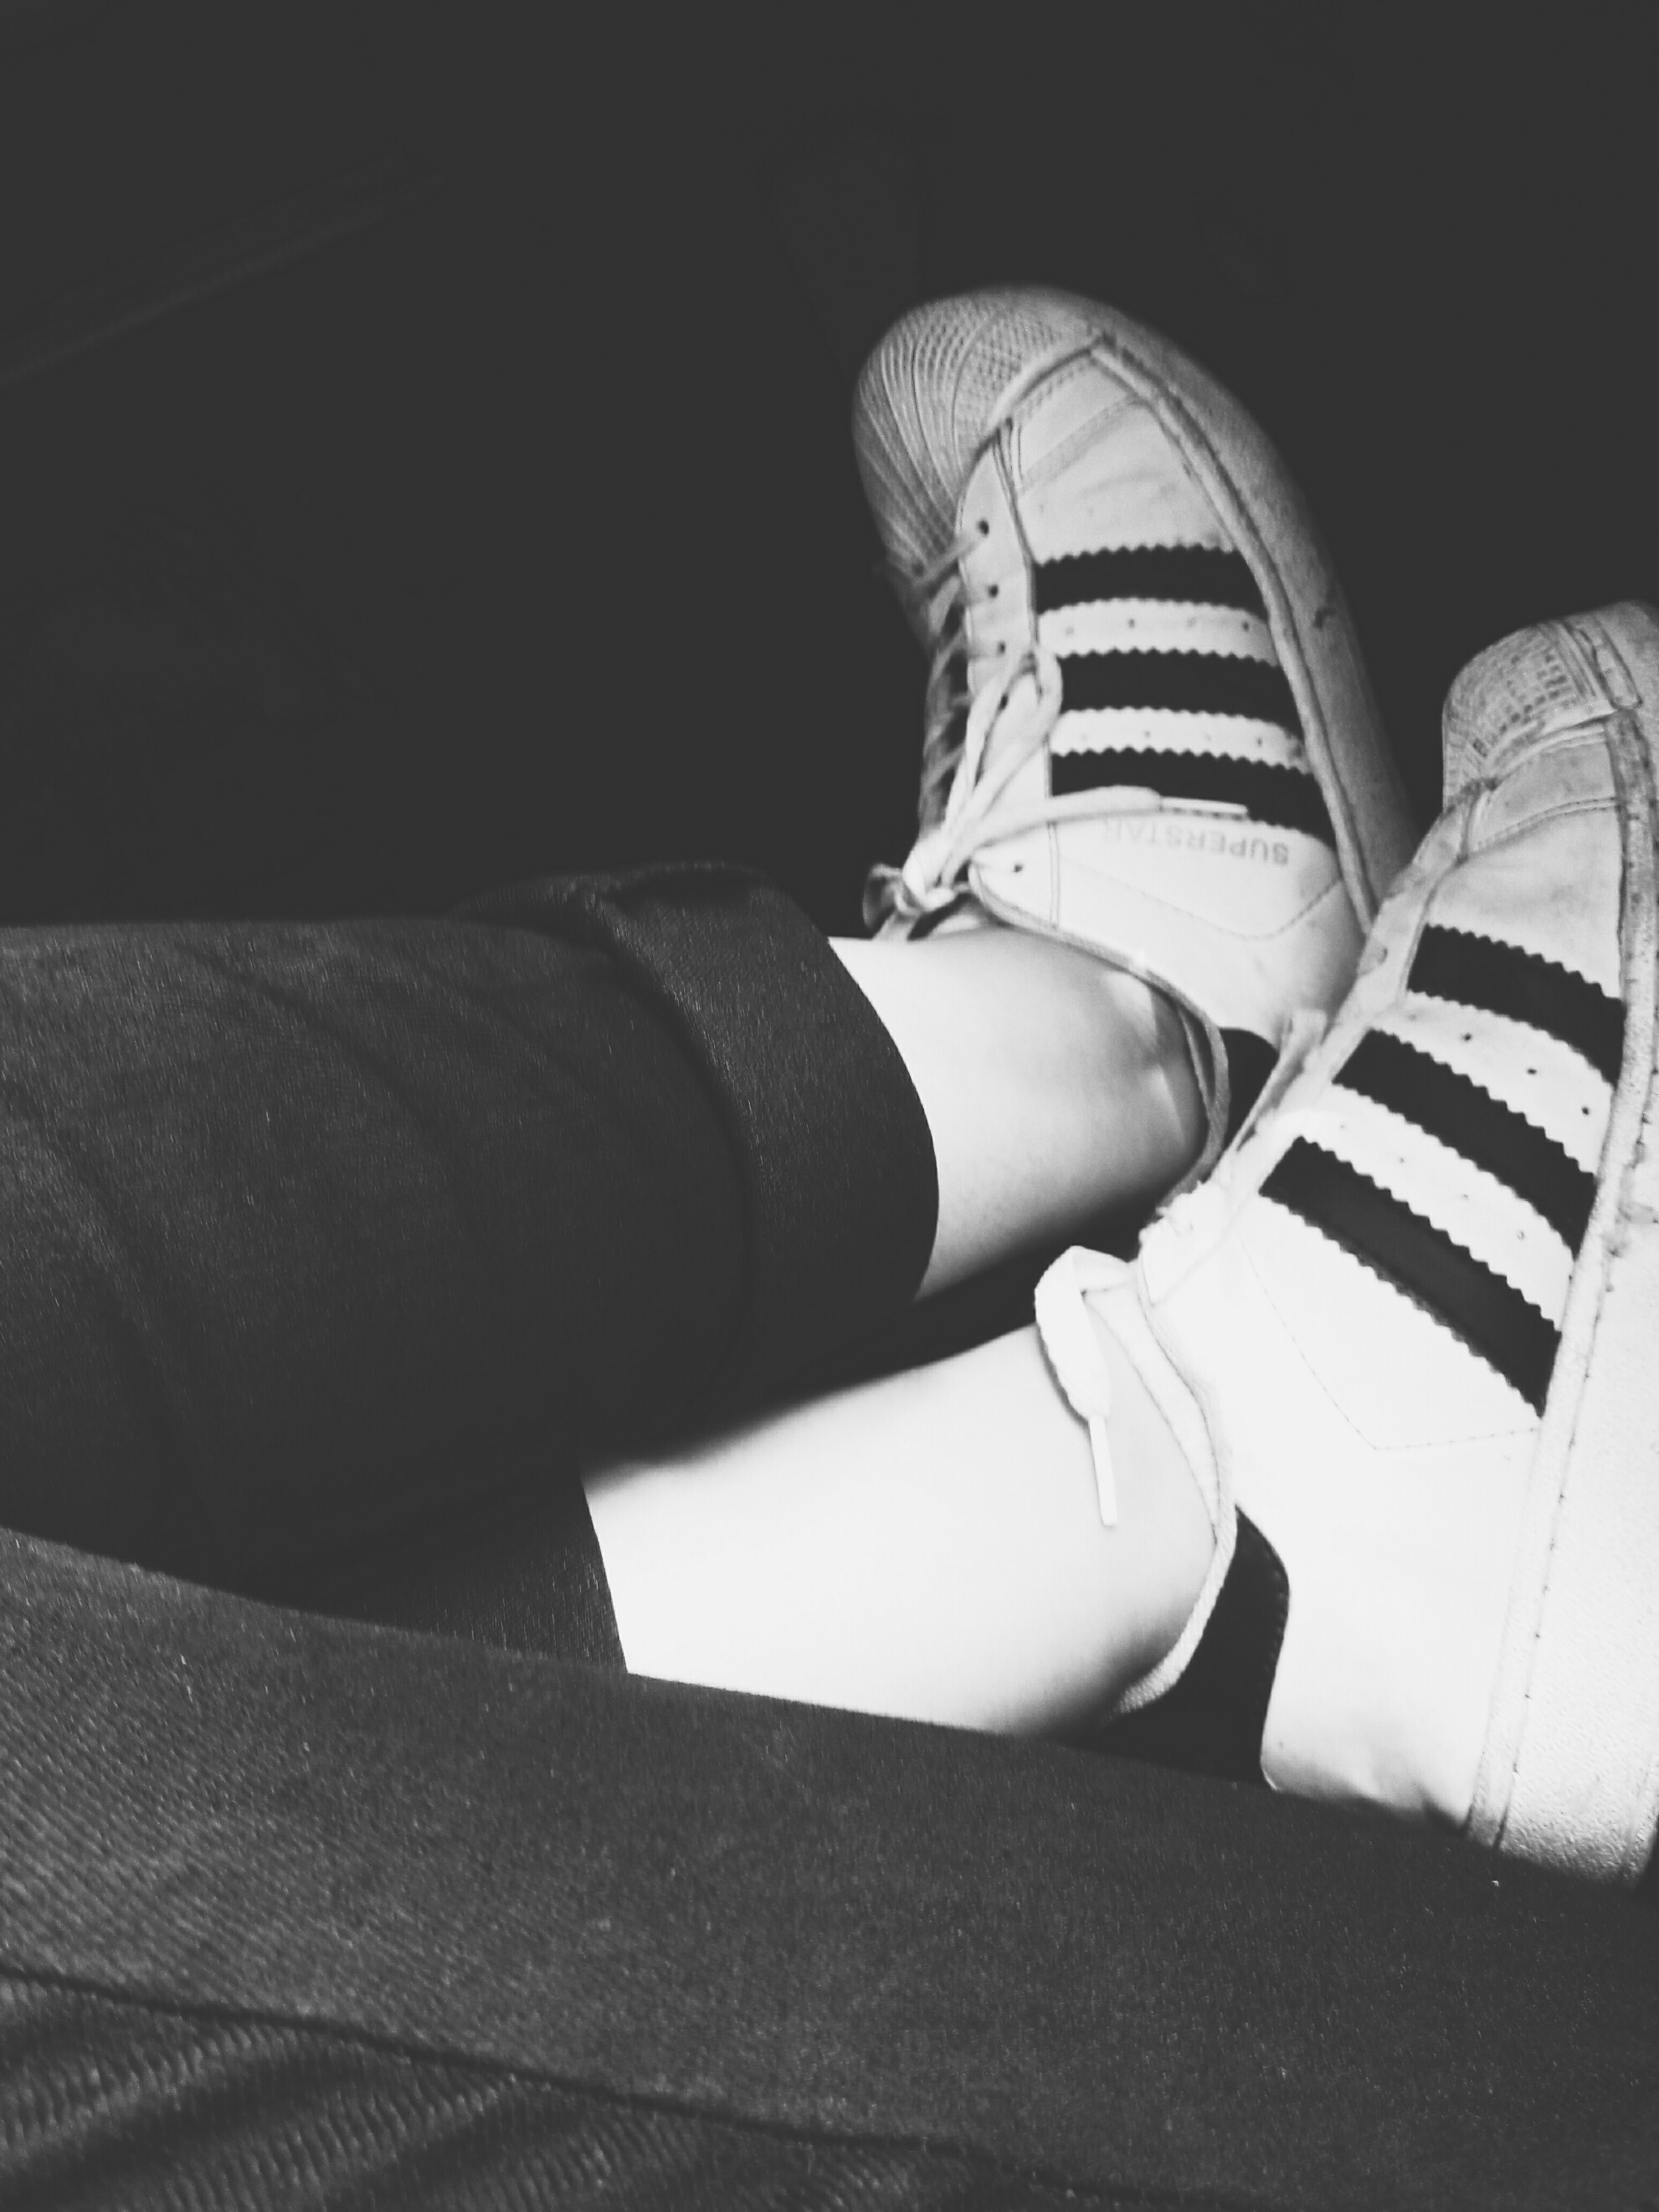 ⚪ADIDAS⚫ adidas adidassuperstar tumblr love l4l black